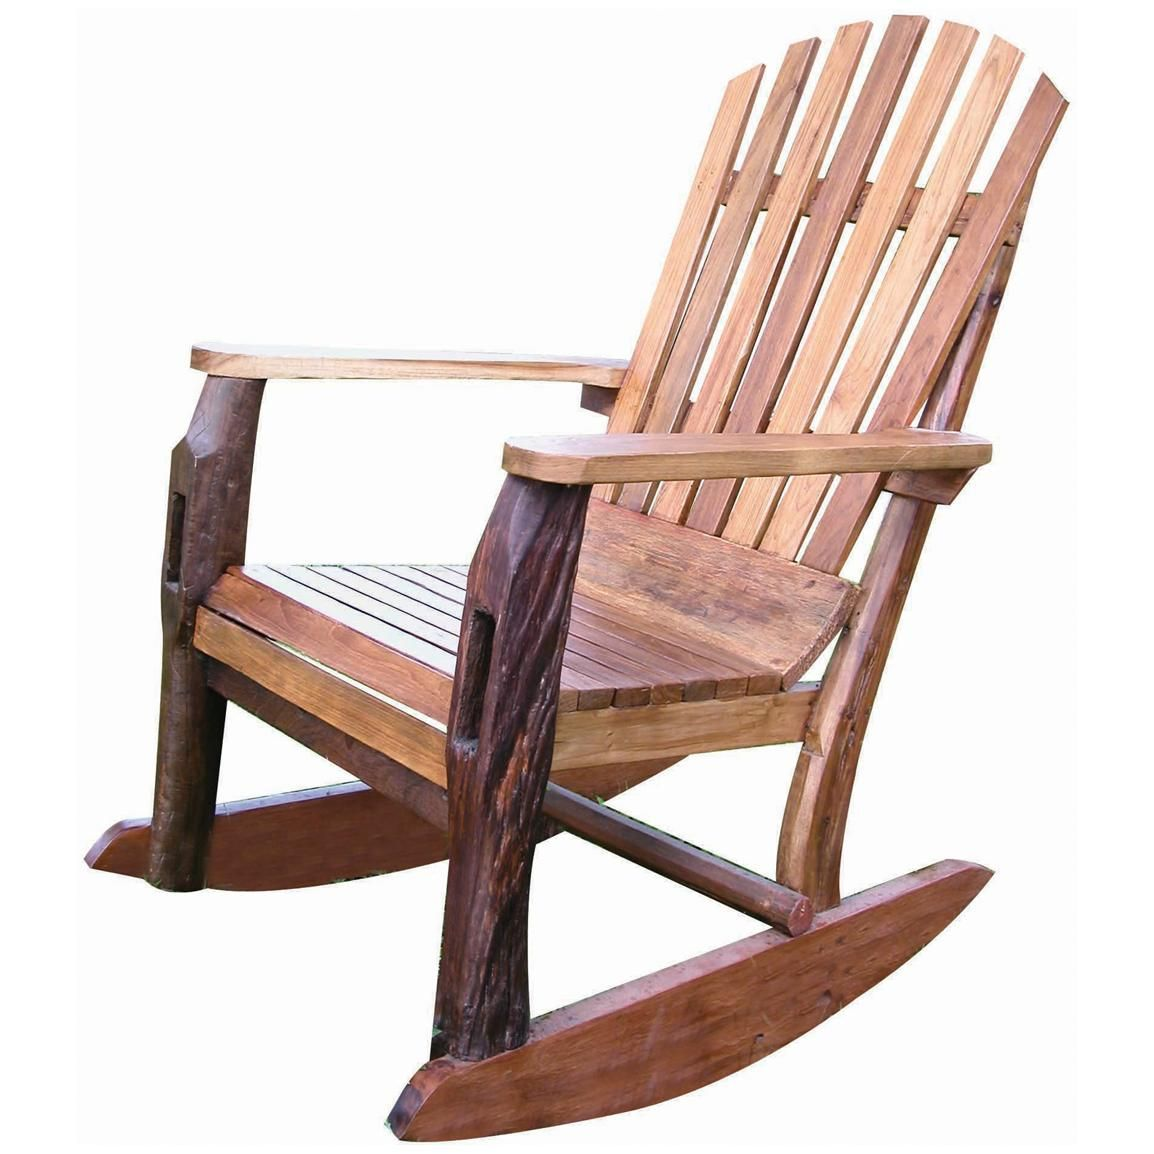 Adirondack Rocking Chair Plans : The Beauty Of Recycled Plastic Adirondack  Chairs | Chair Plans DIY